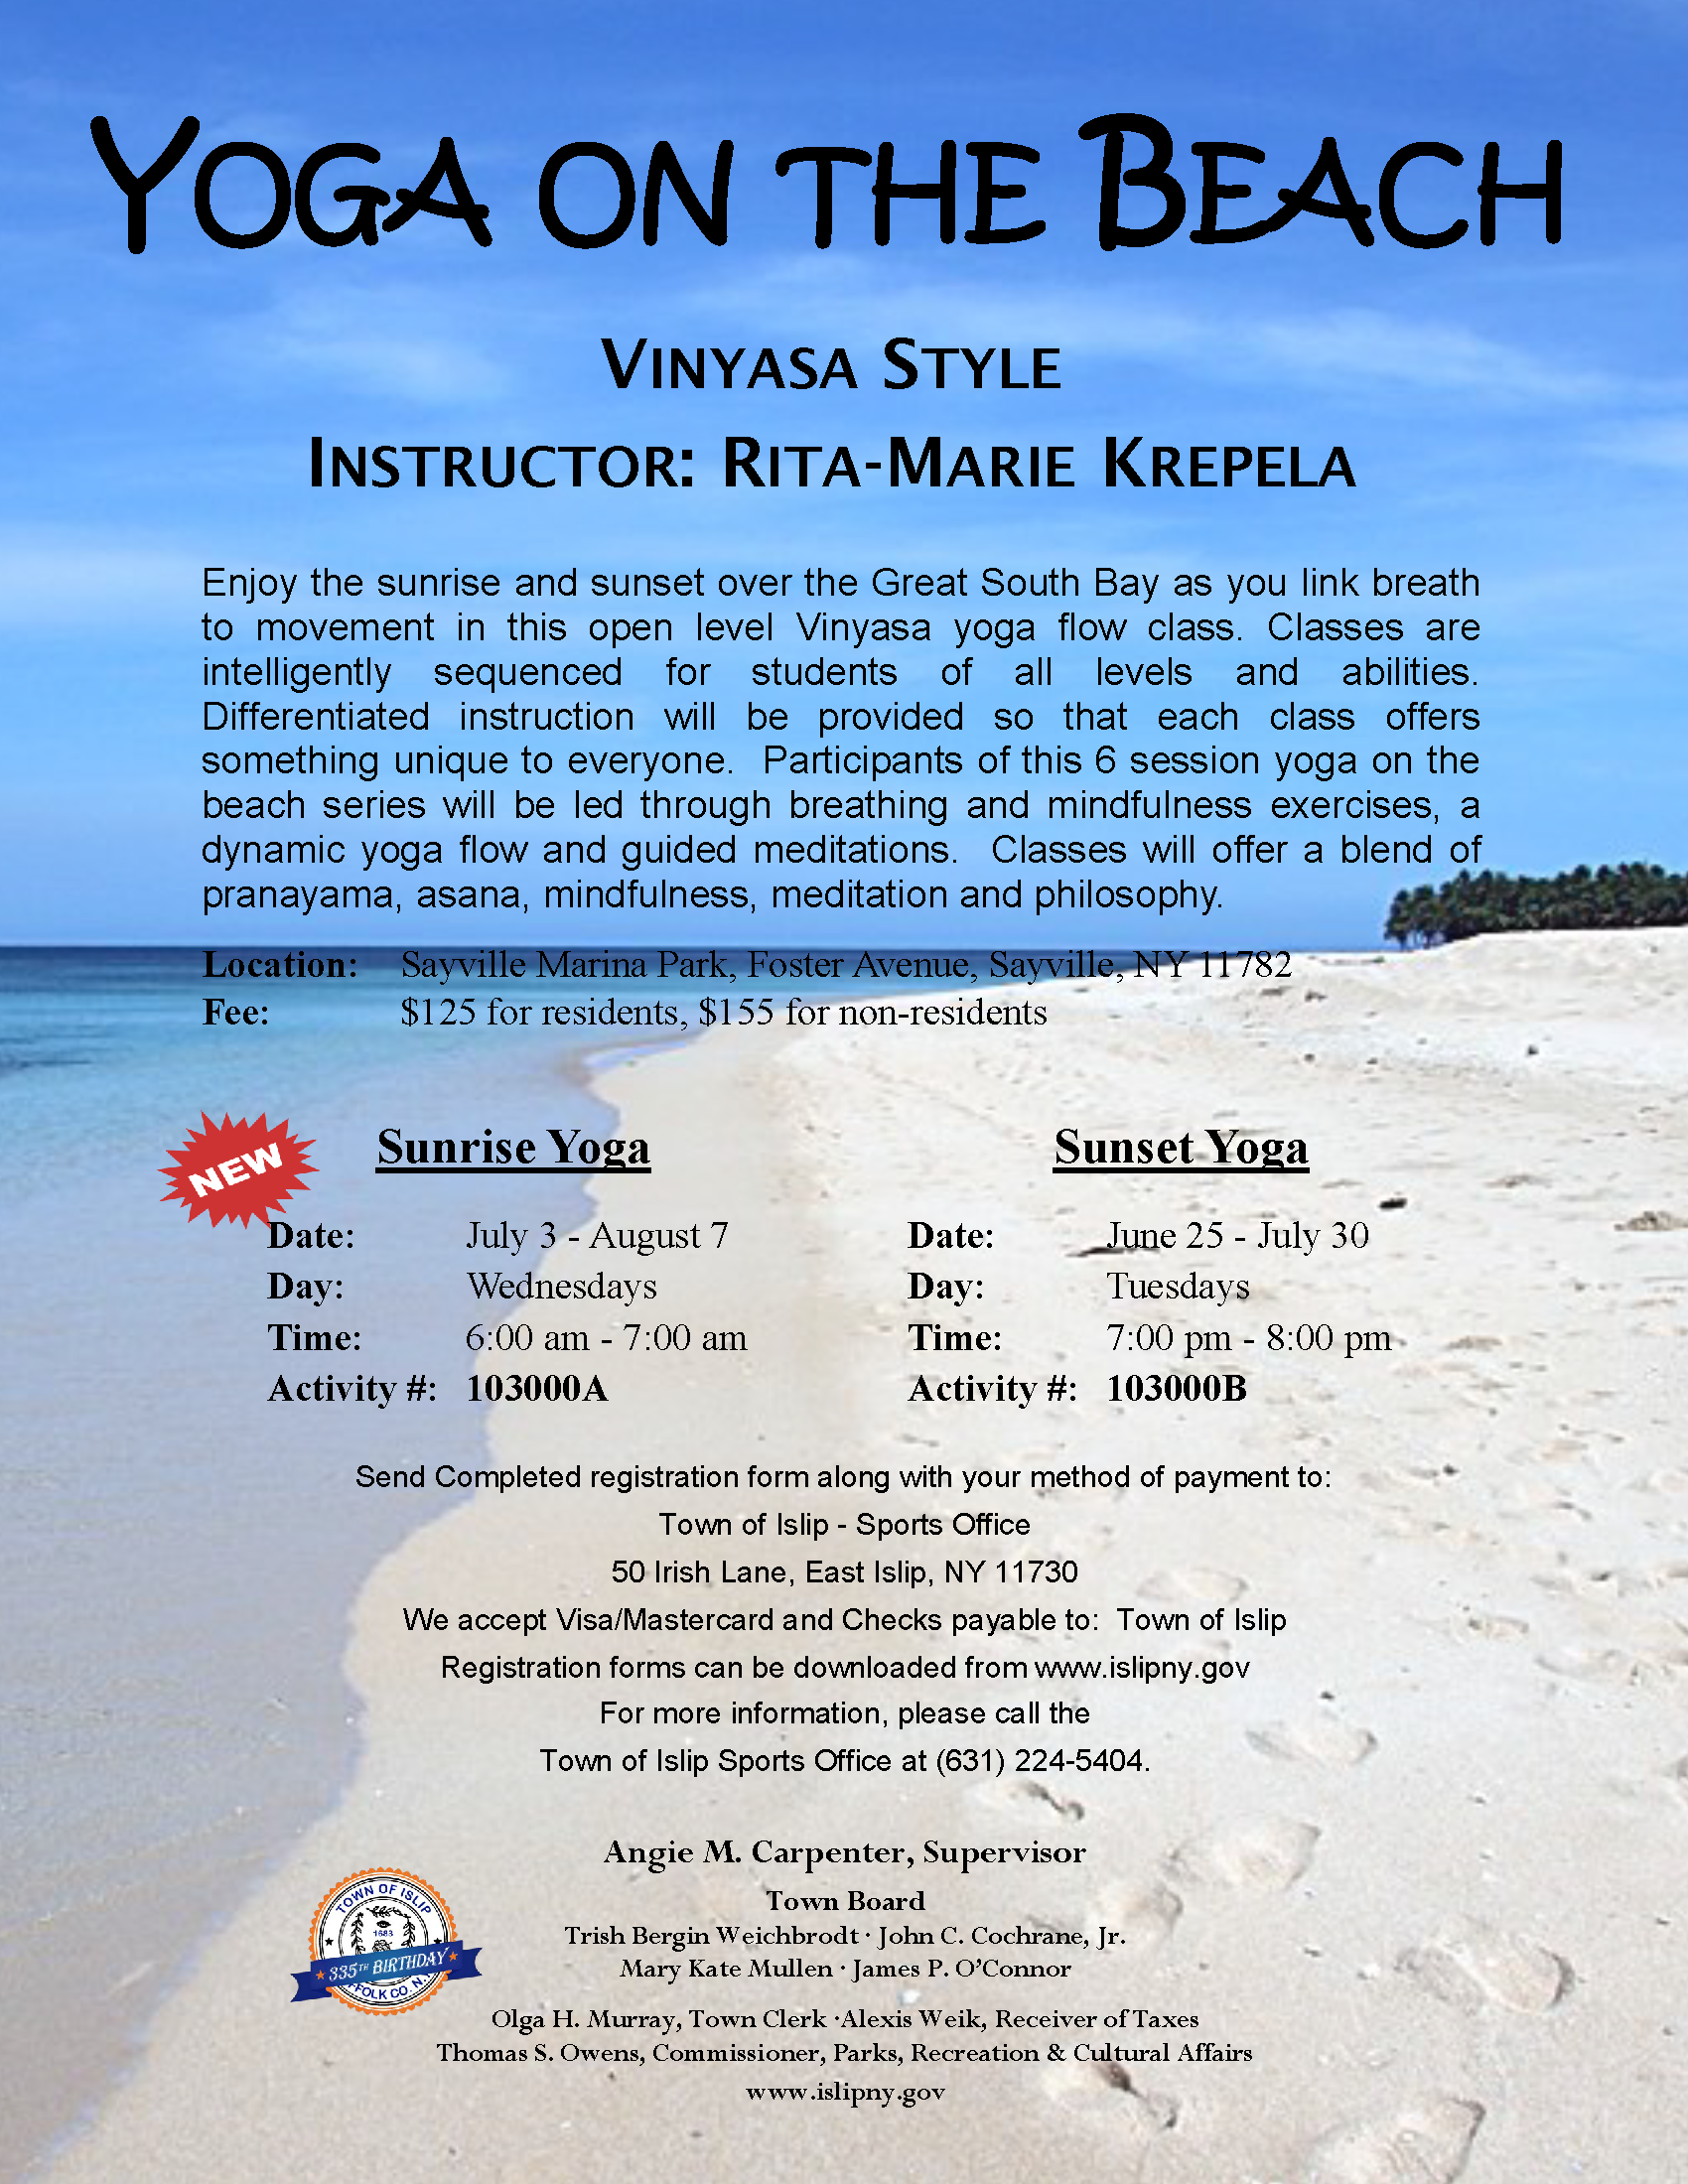 Yoga on the Beach classes flyer, call (631) 224-5404 for more information.